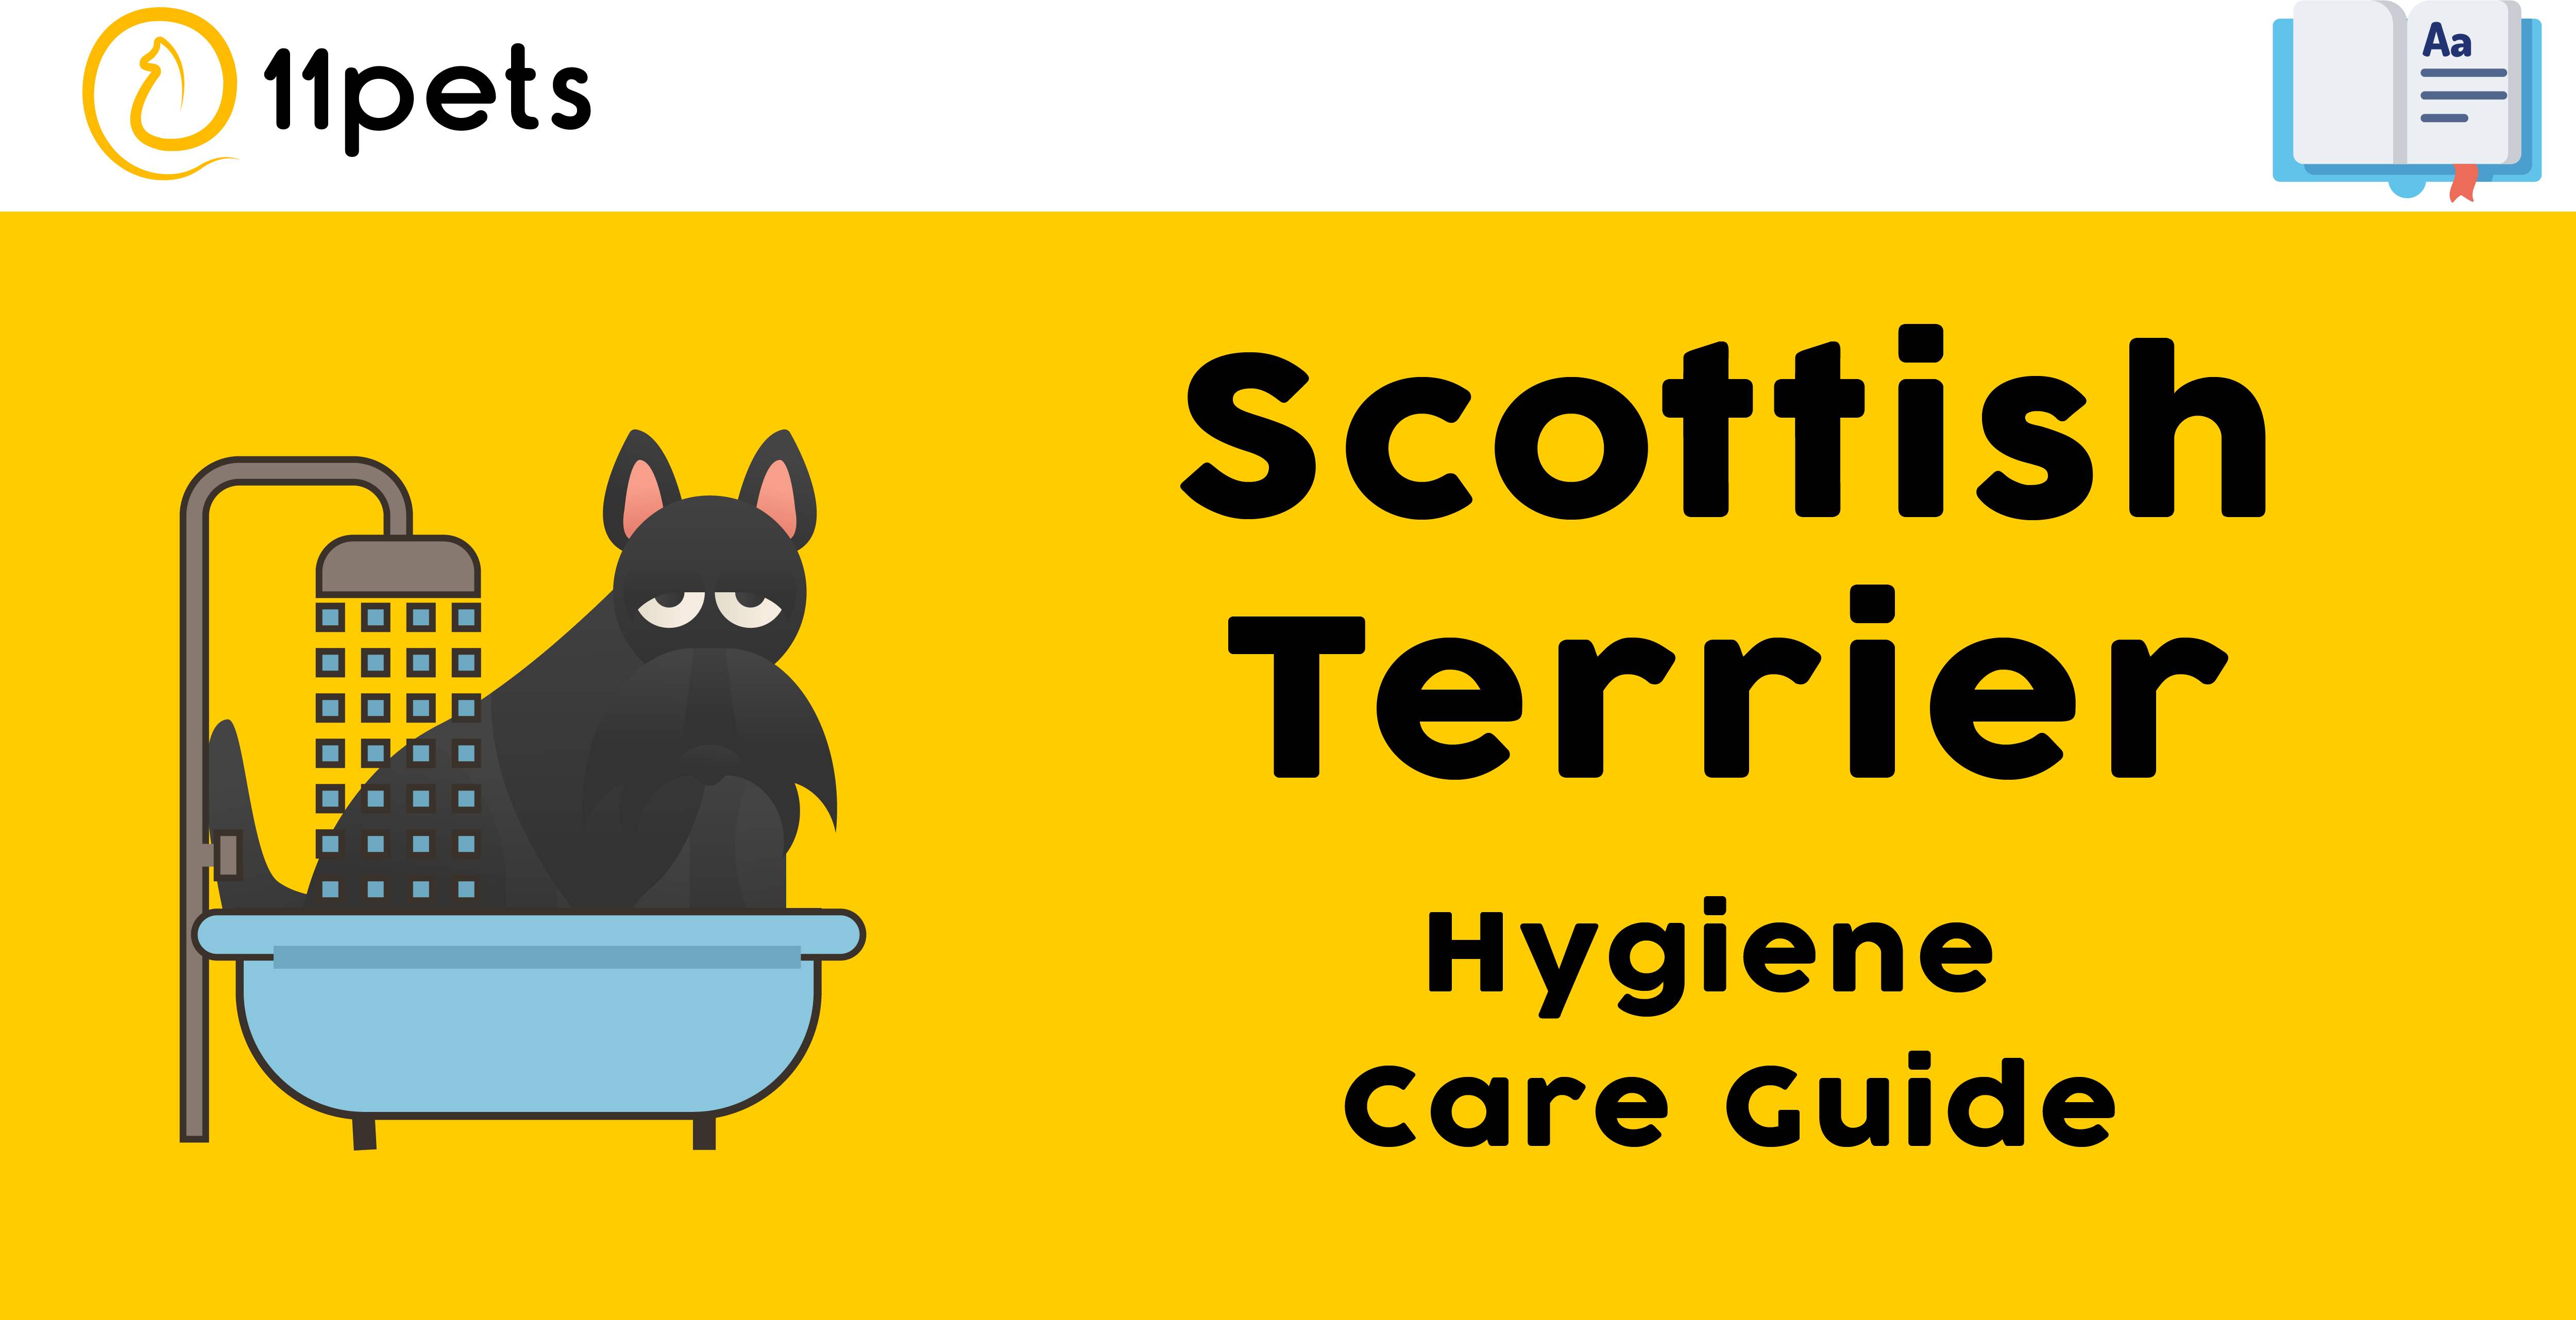 Hygiene Care Guide for Scottish Terriers